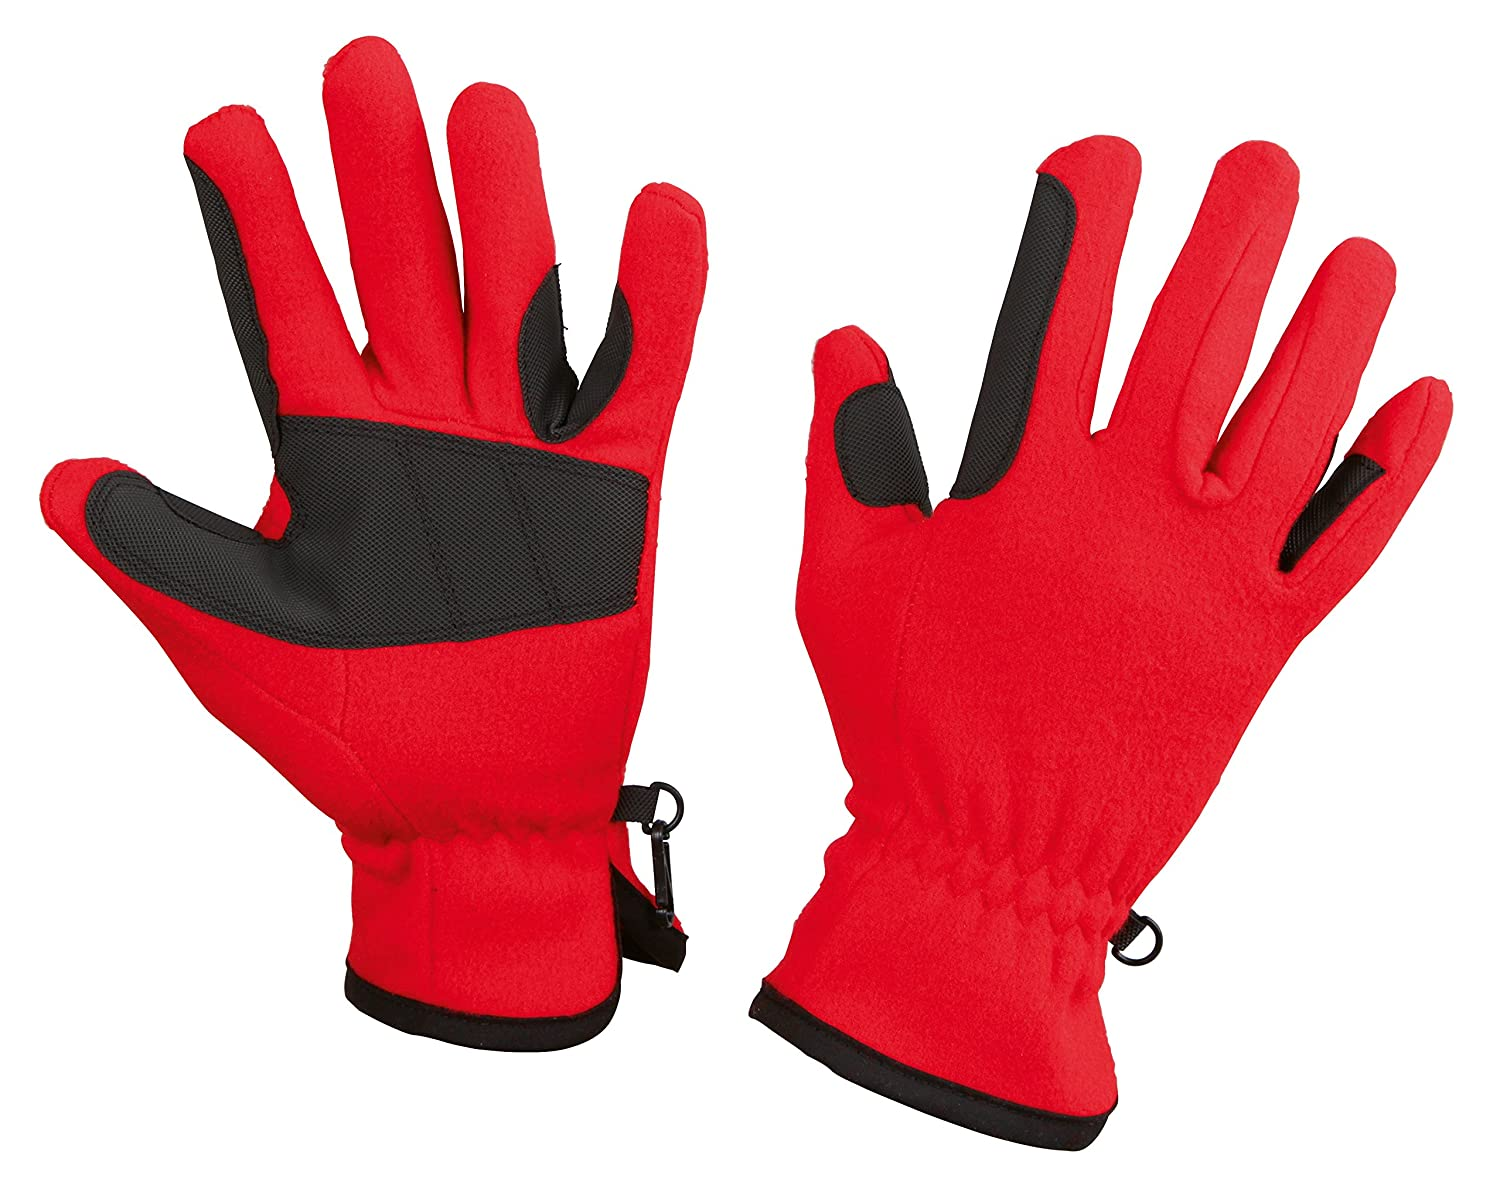 Kerbl Fleece Riding Gloves 324053